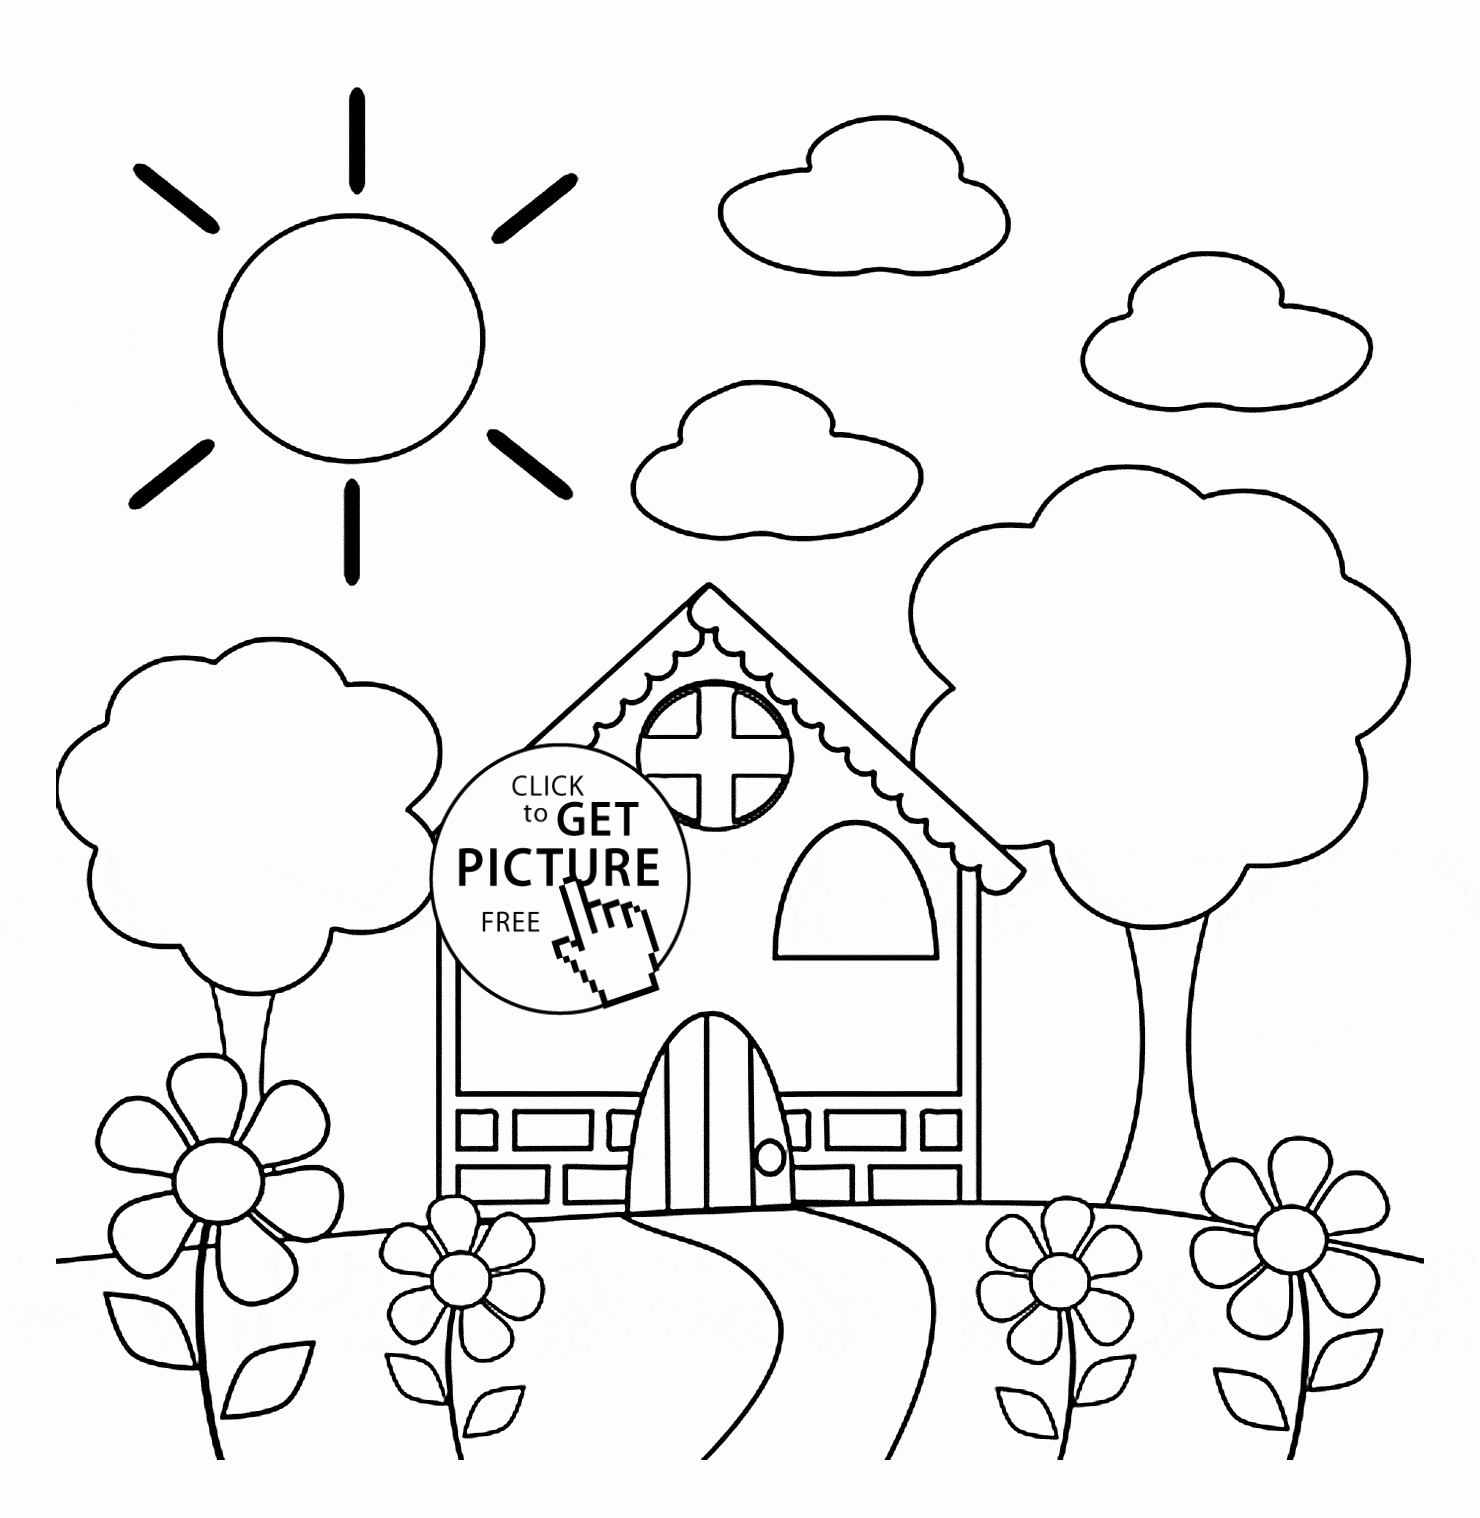 Pixel Coloring Pages At Getcolorings